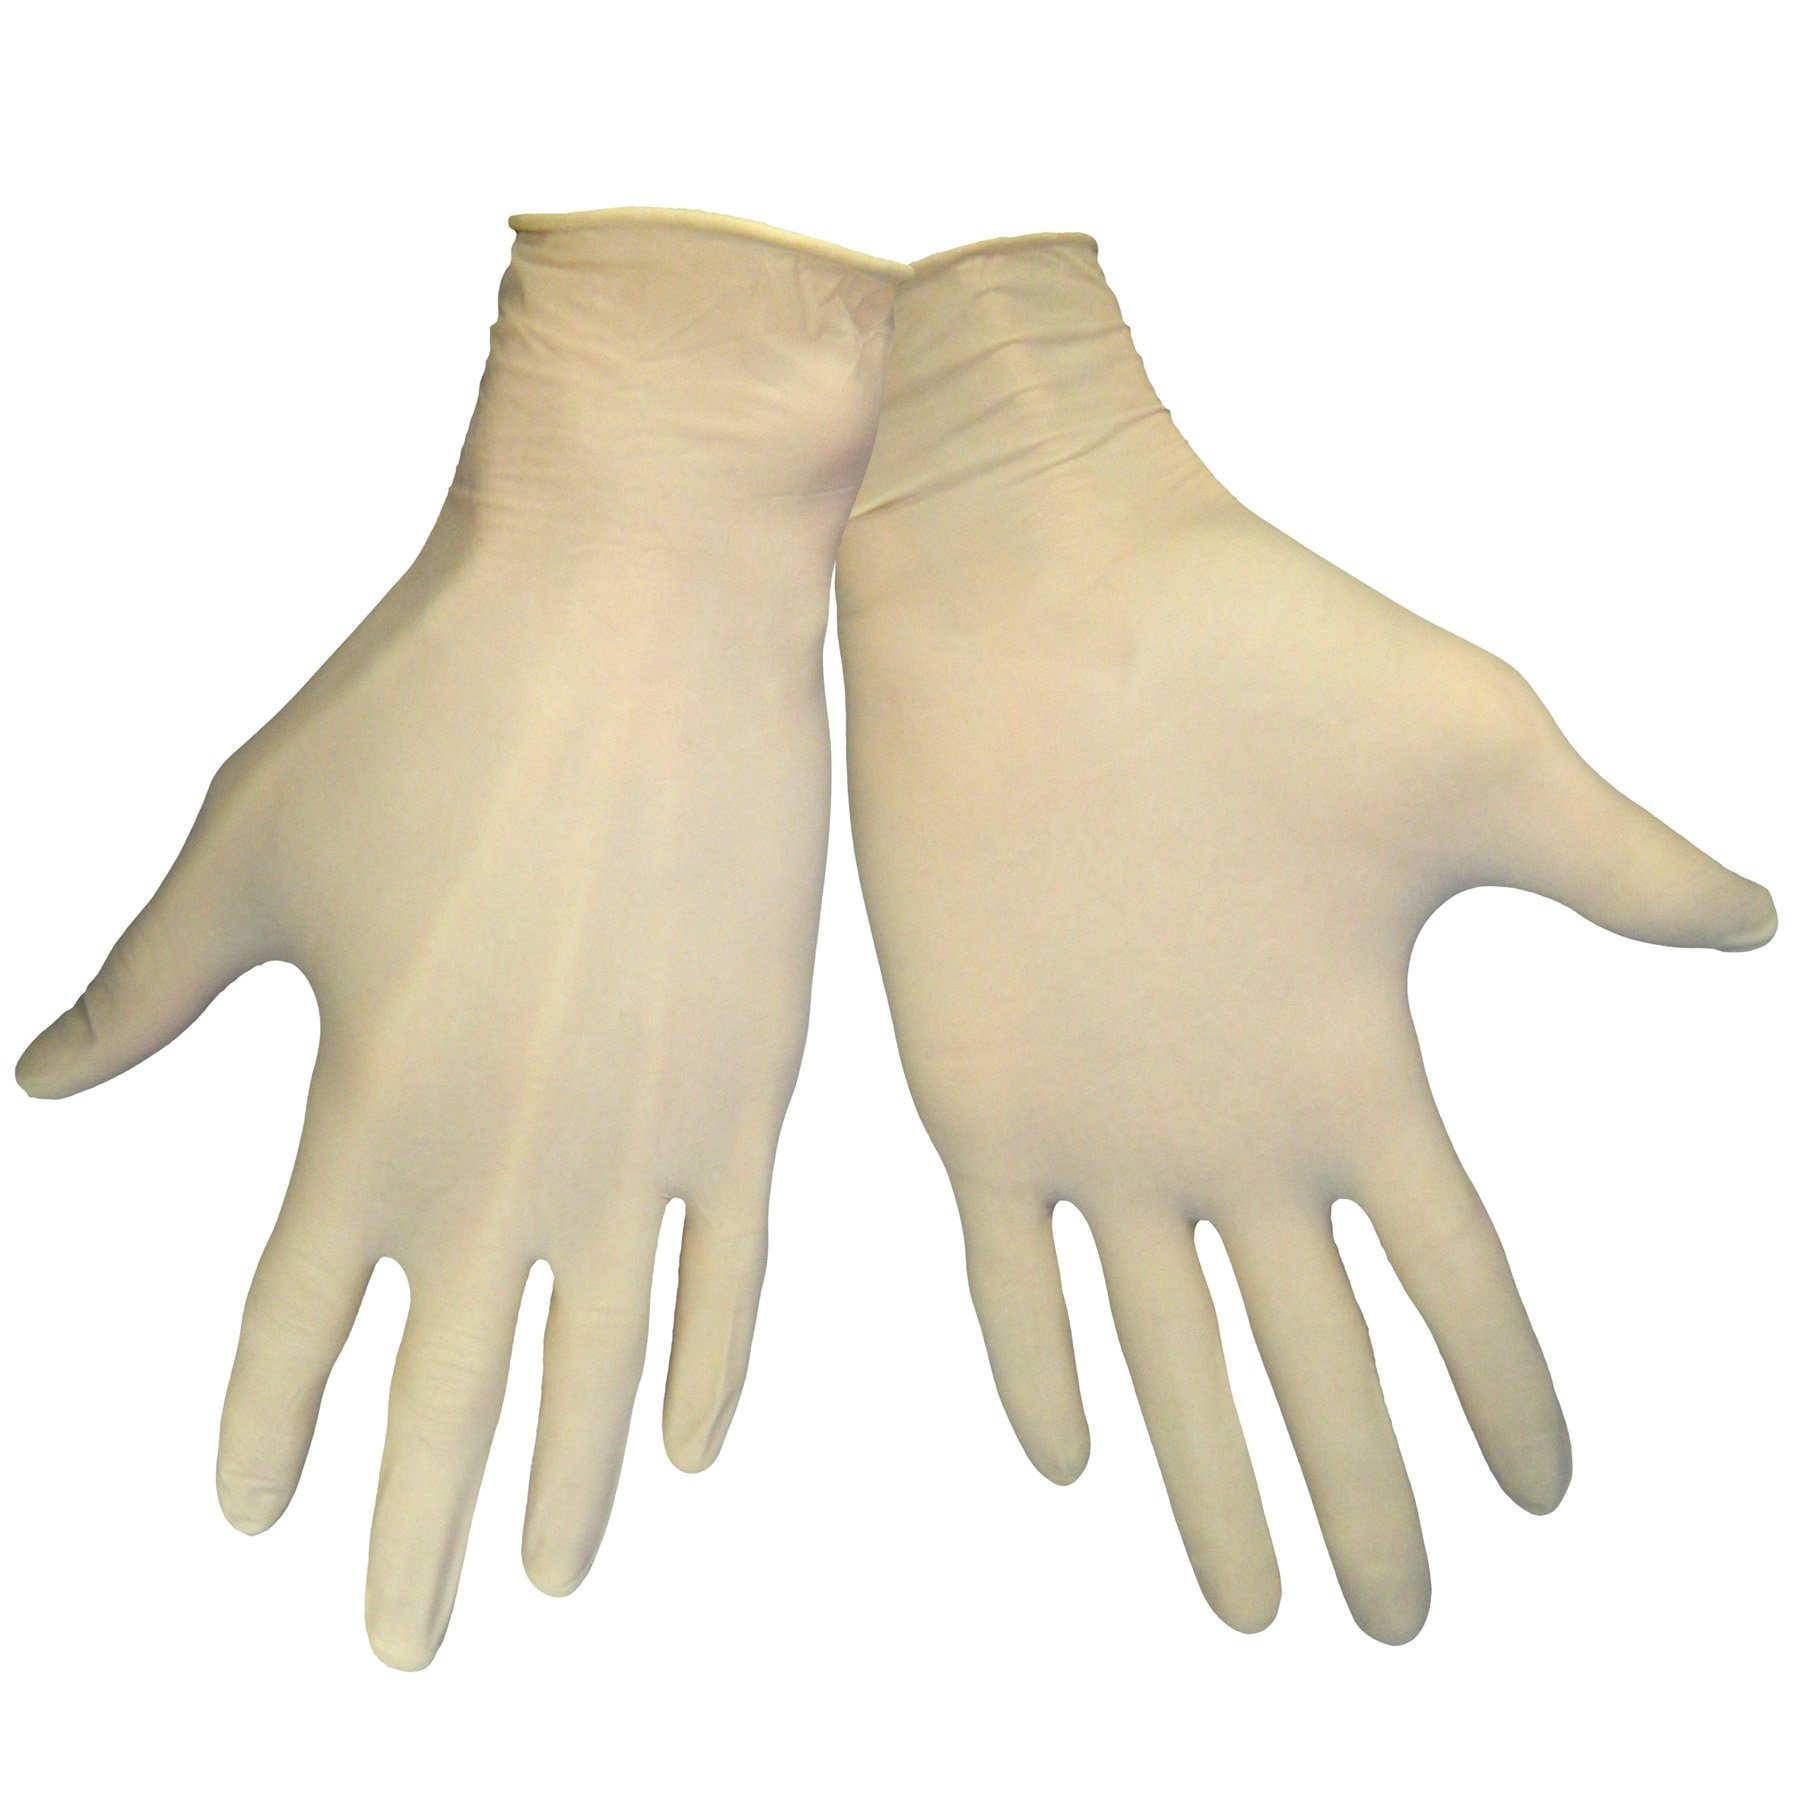 Global Glove 305 Latex Lightly Glove, Disposable, Powdered, Medium (Case of 1000)